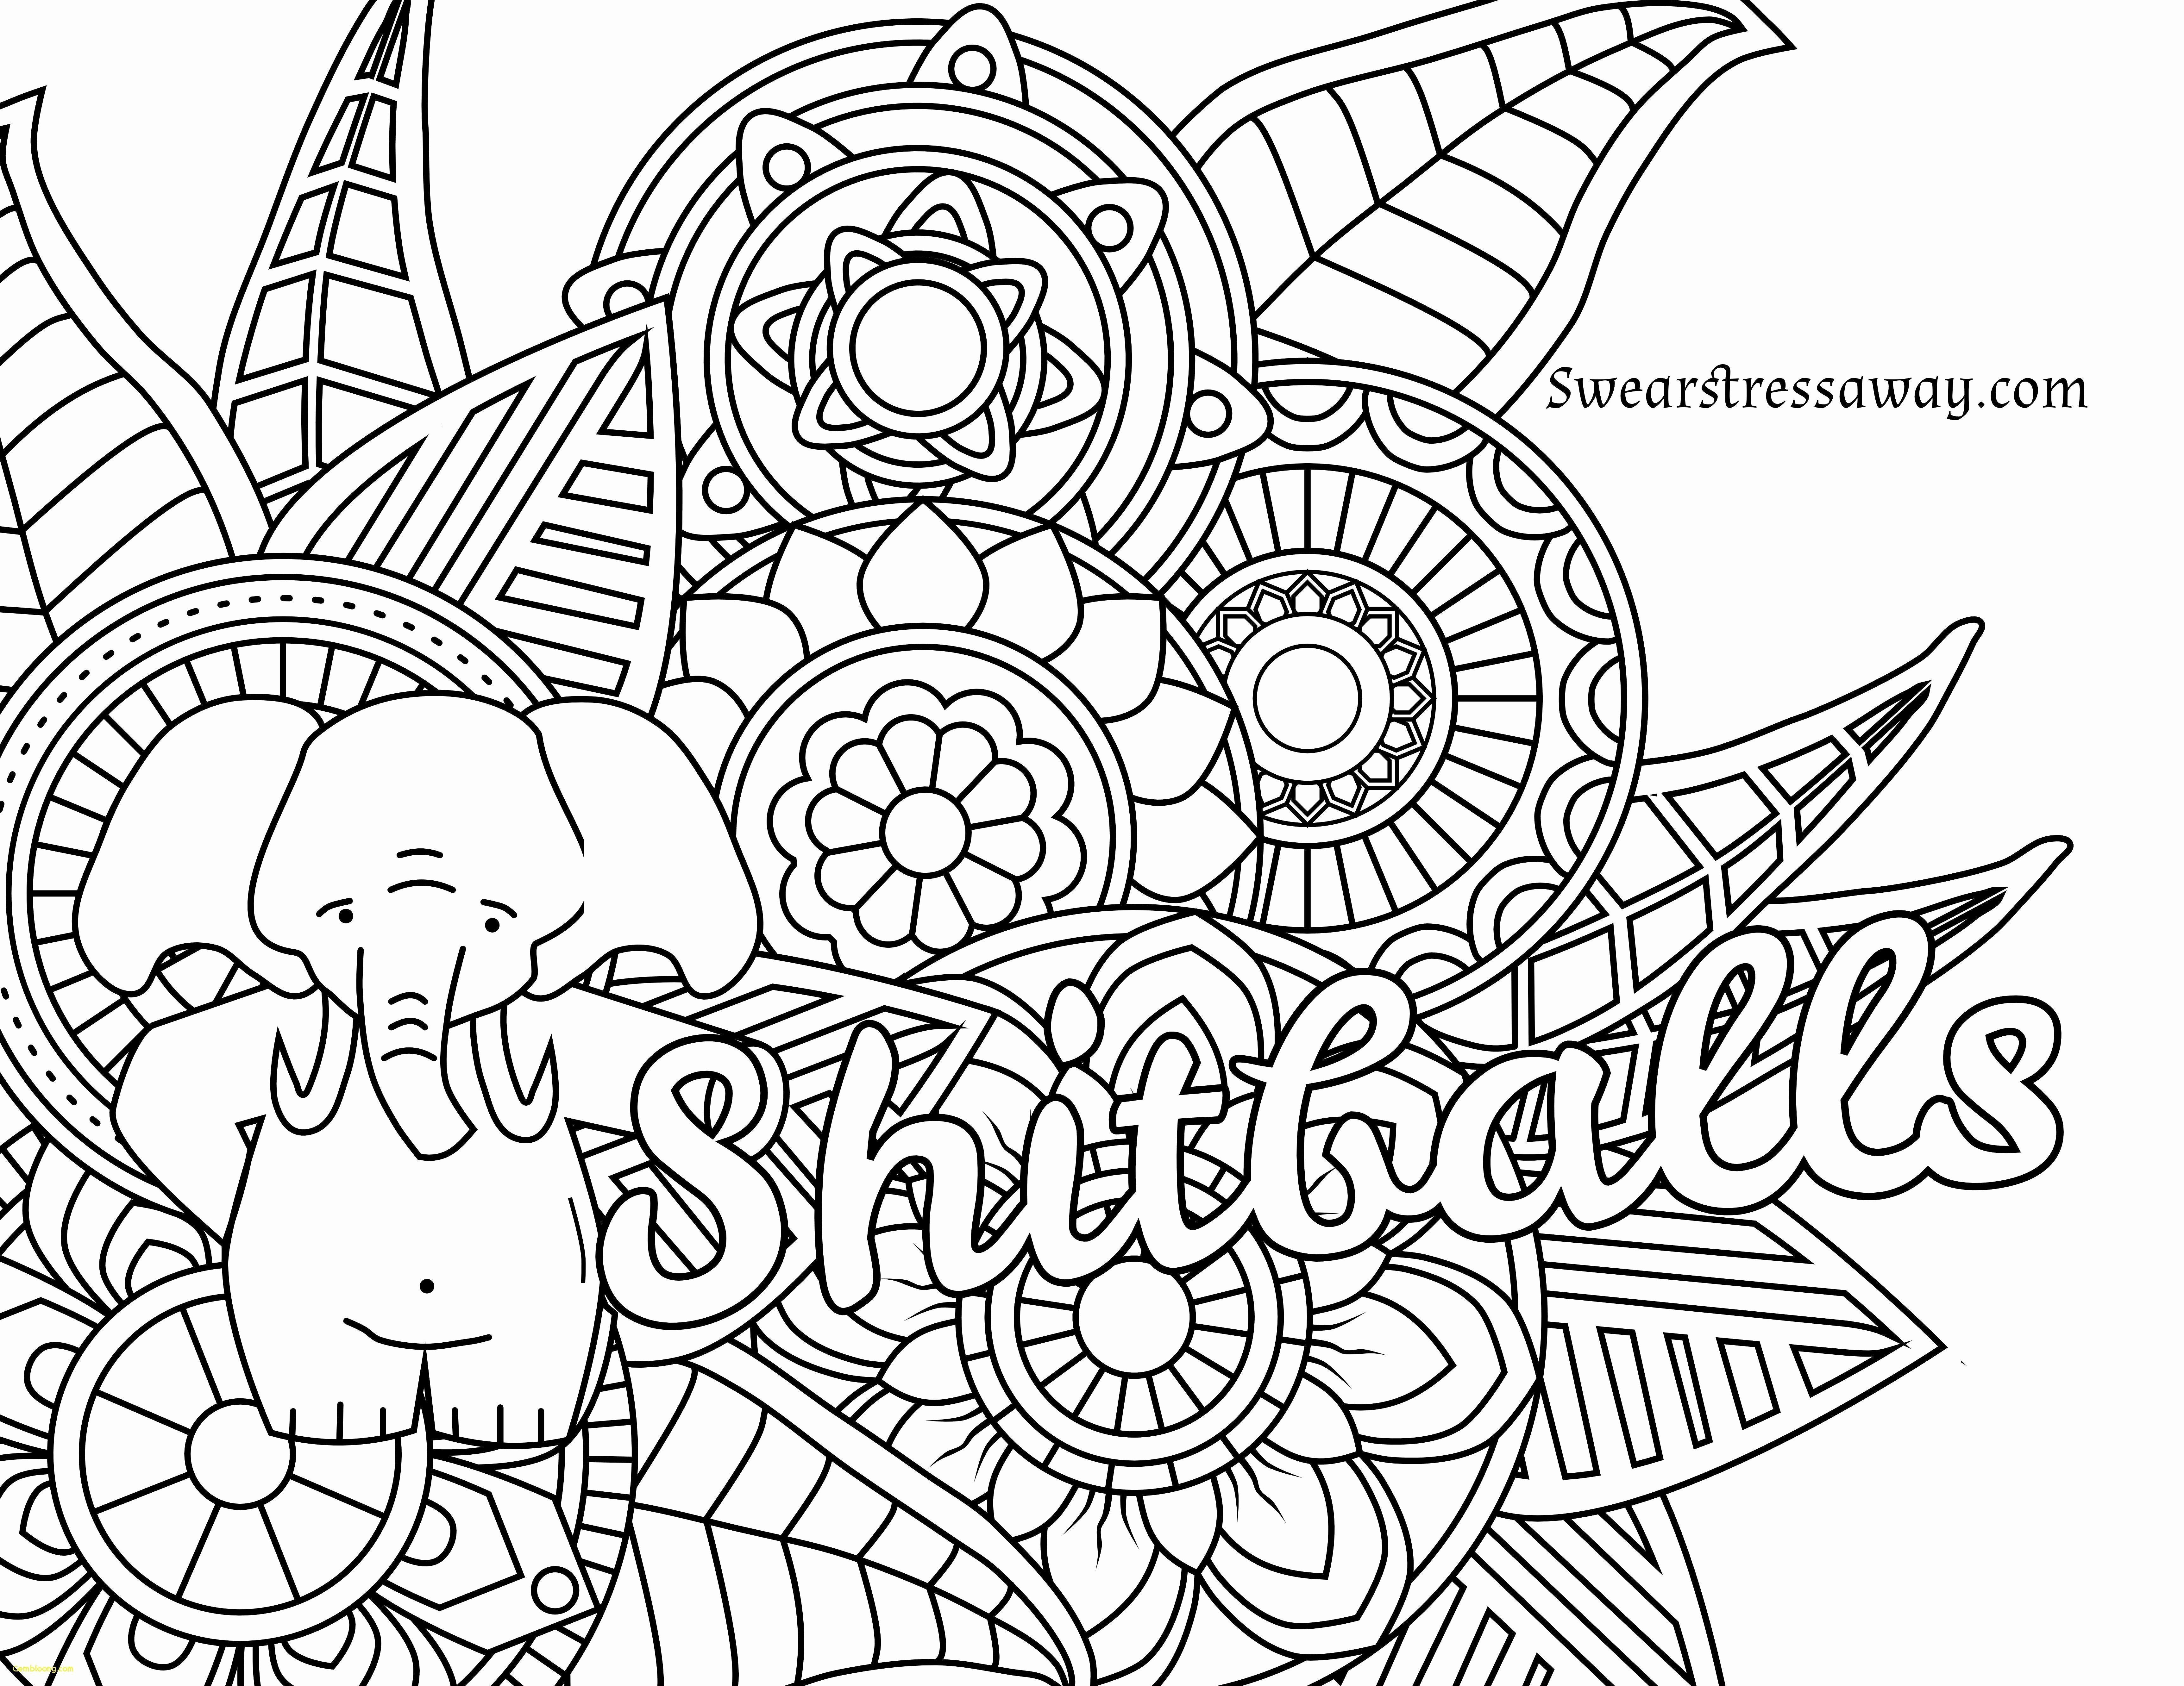 Free Downloadable Coloring Book Inspirational Whitehouse Coloring In 2020 Words Coloring Book Fall Coloring Pages Online Coloring Pages